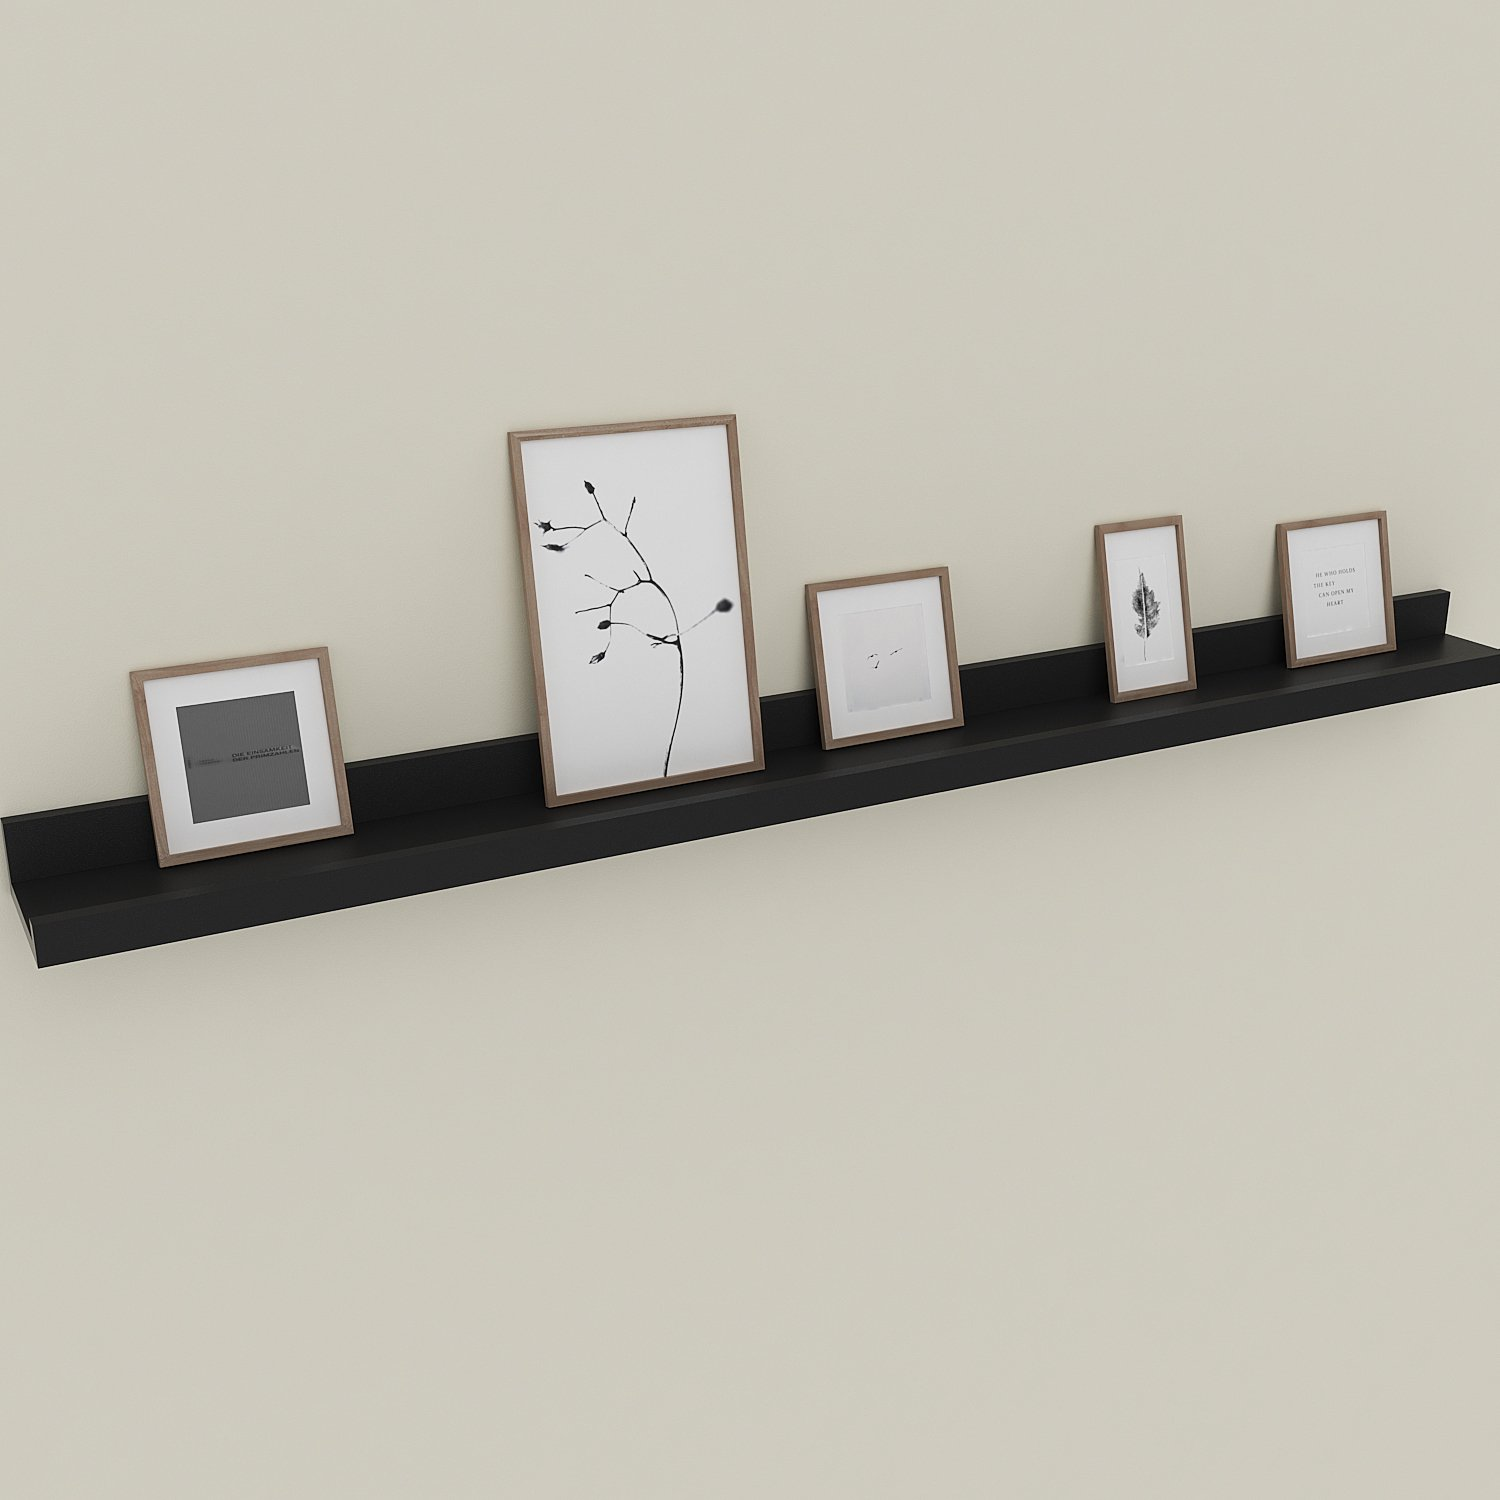 wall mounted floating shelf display ledge for shelves ture frames book black home kitchen command strips heavy ikea pegs oak corbels unit storage cube from can you hang tures